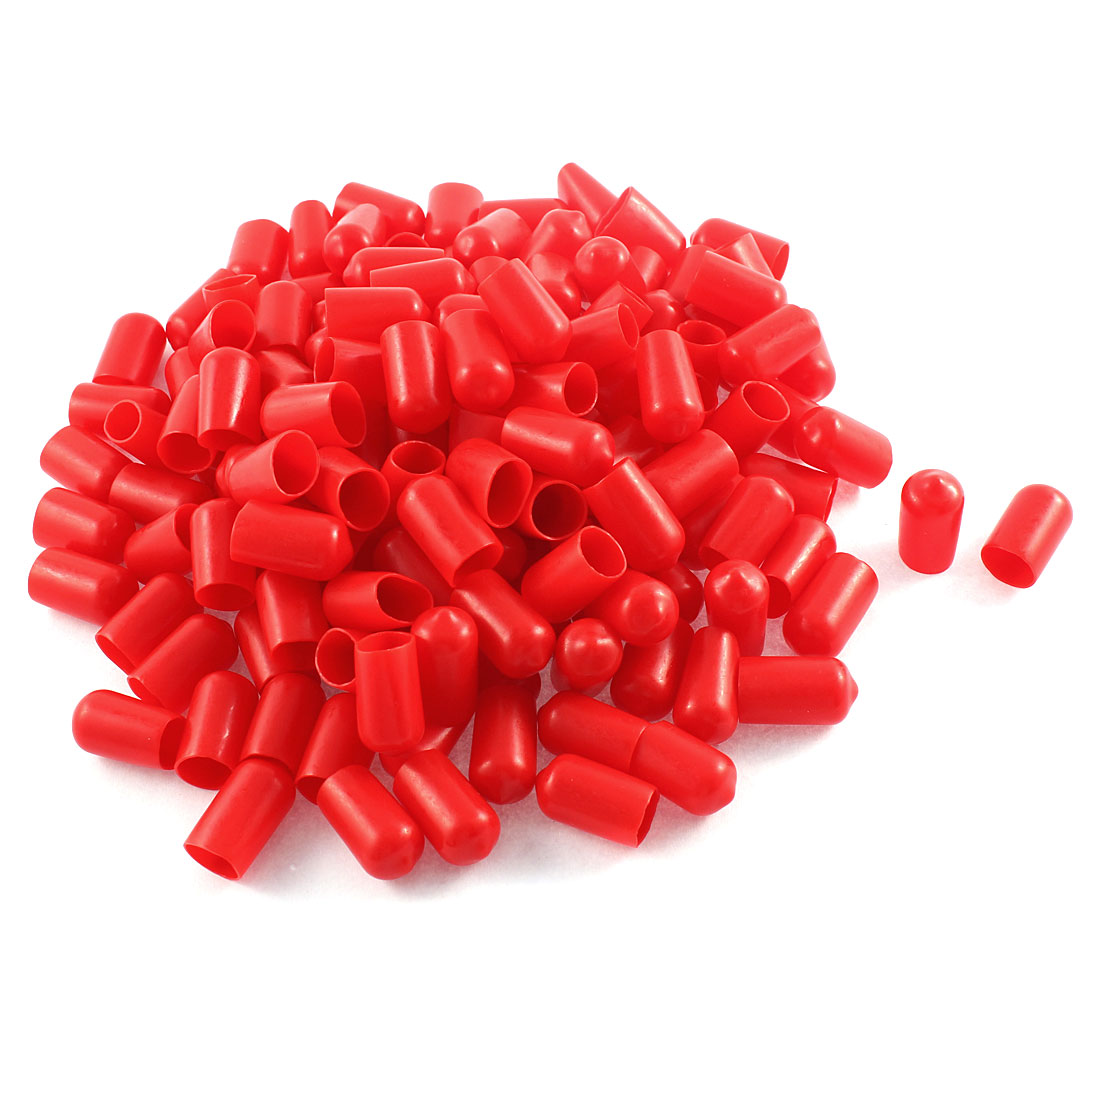 150Pcs Red Soft Plastic PVC Insulated End Sleeves Caps Cover 12mm Dia